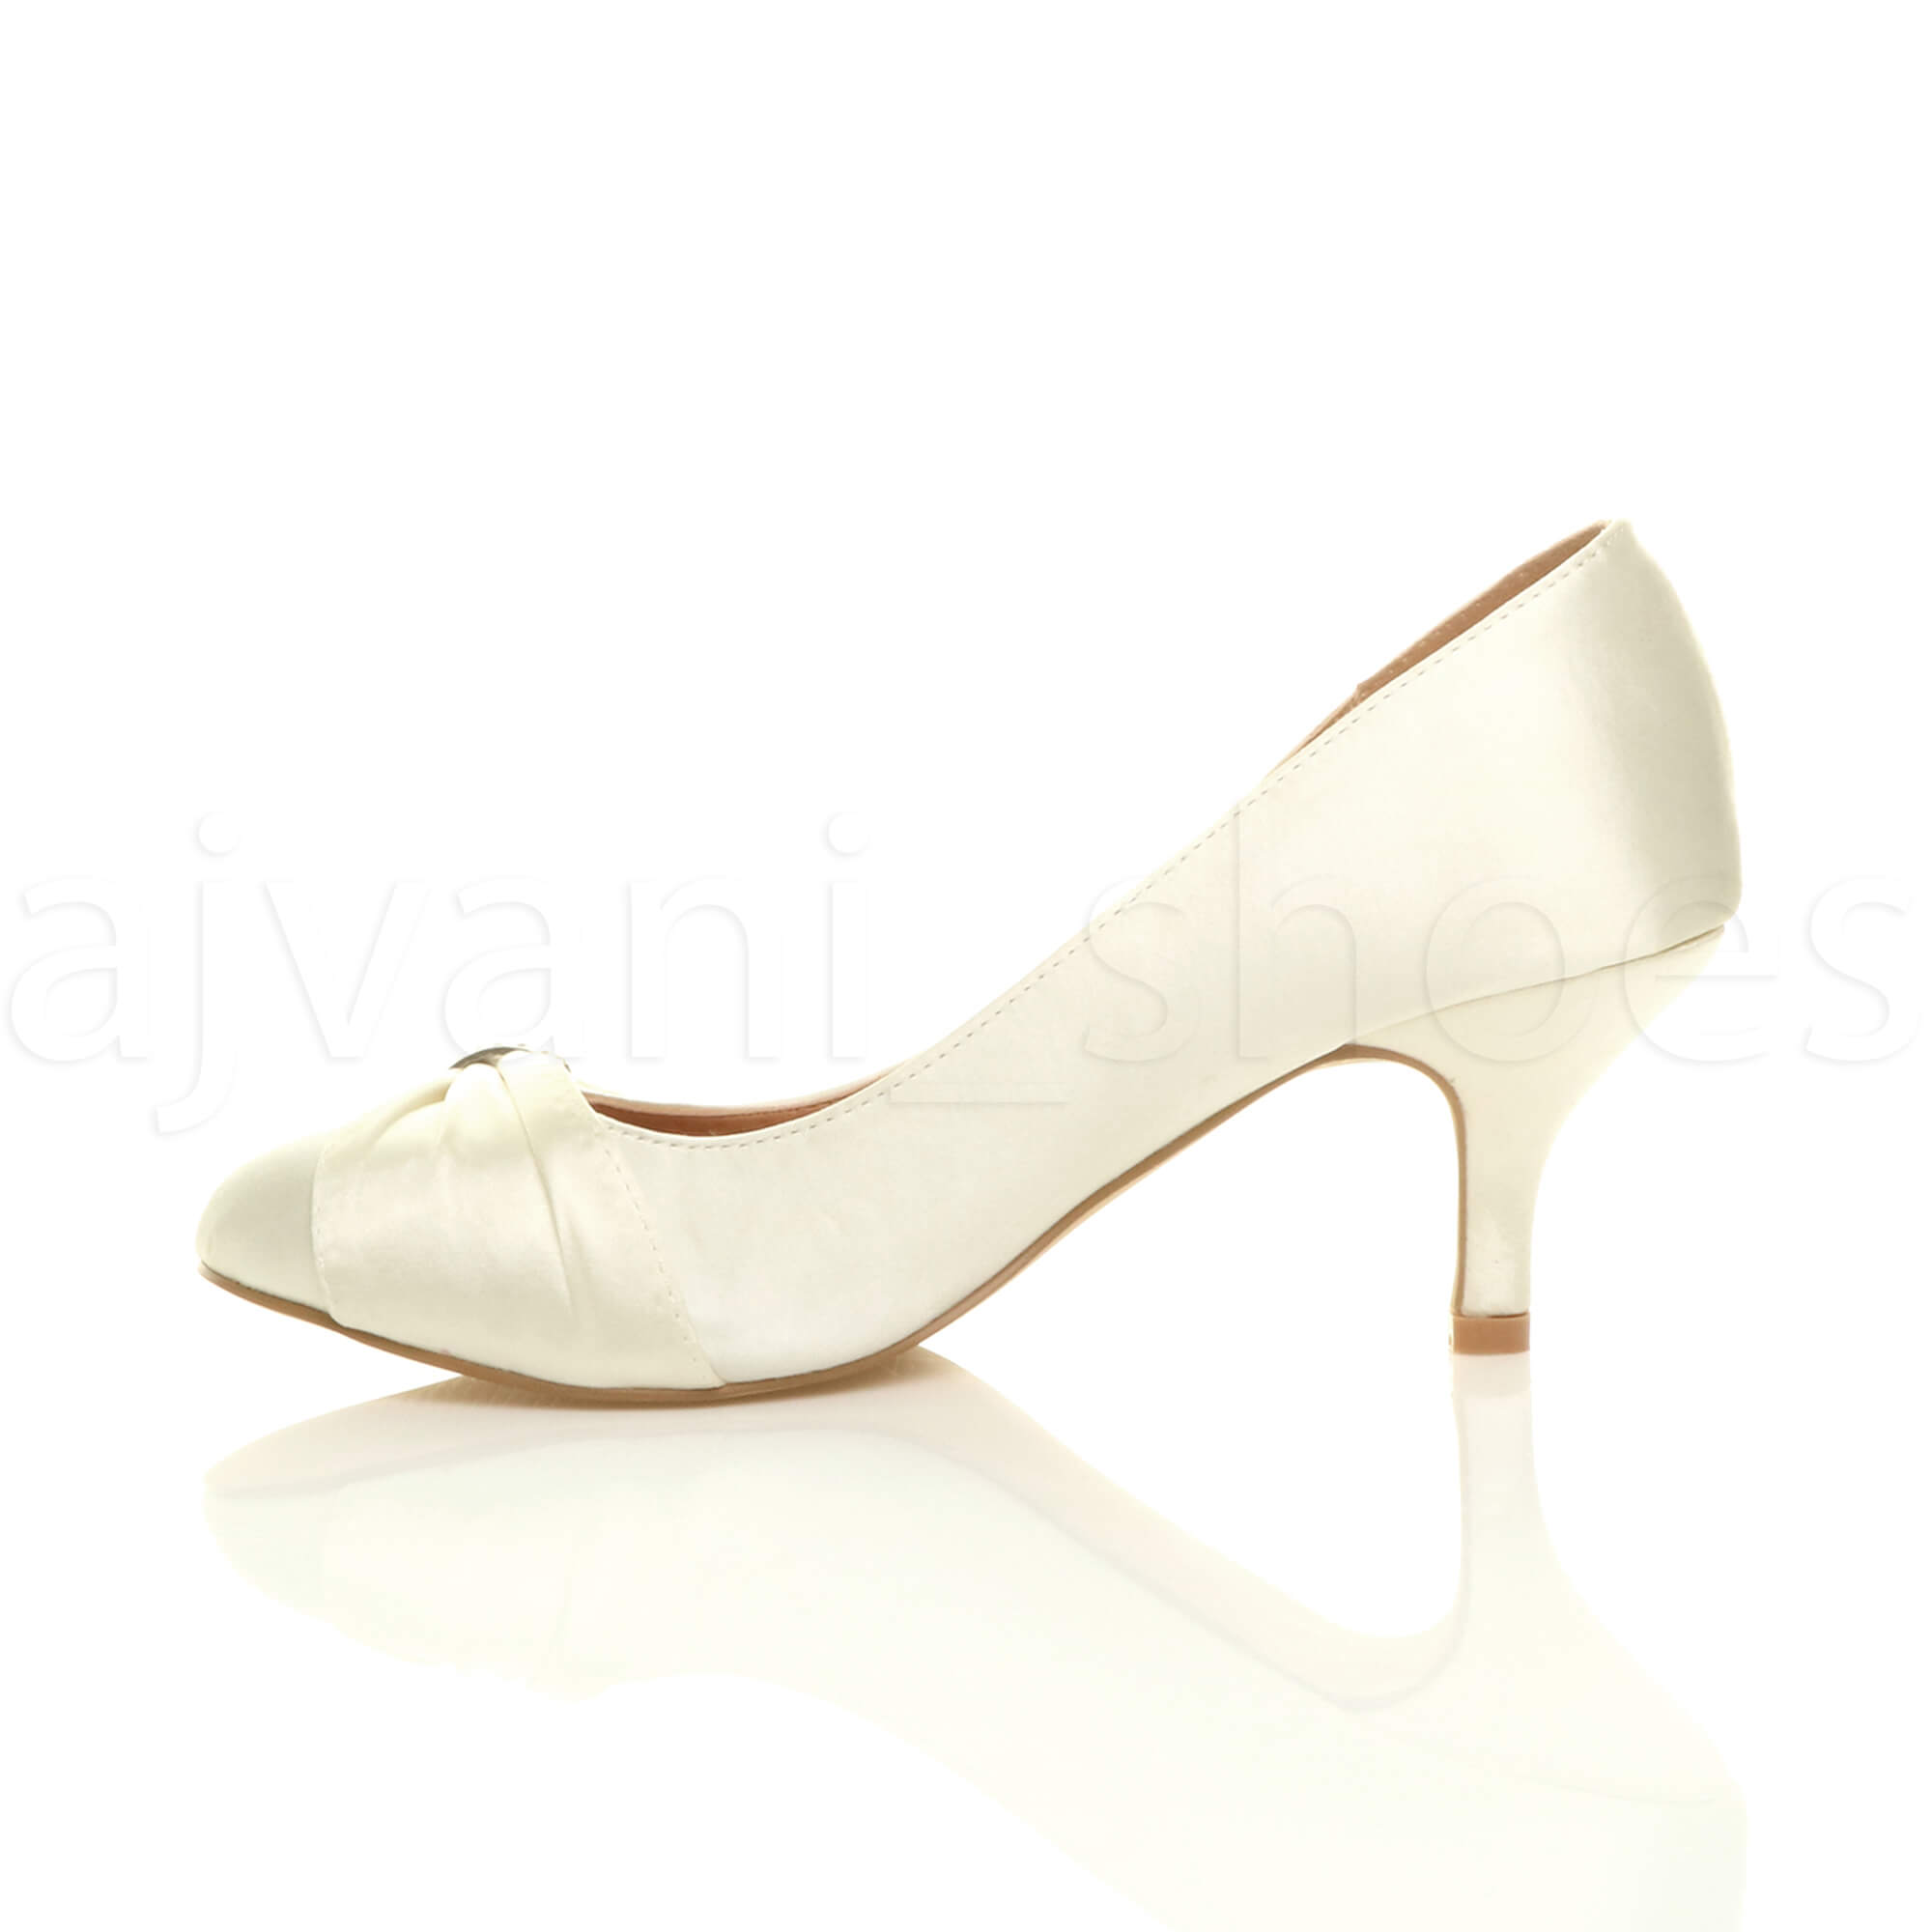 WOMENS-LADIES-MID-HEEL-RUCHED-DIAMANTE-WEDDING-PROM-EVENING-COURT-SHOES-SIZE thumbnail 36